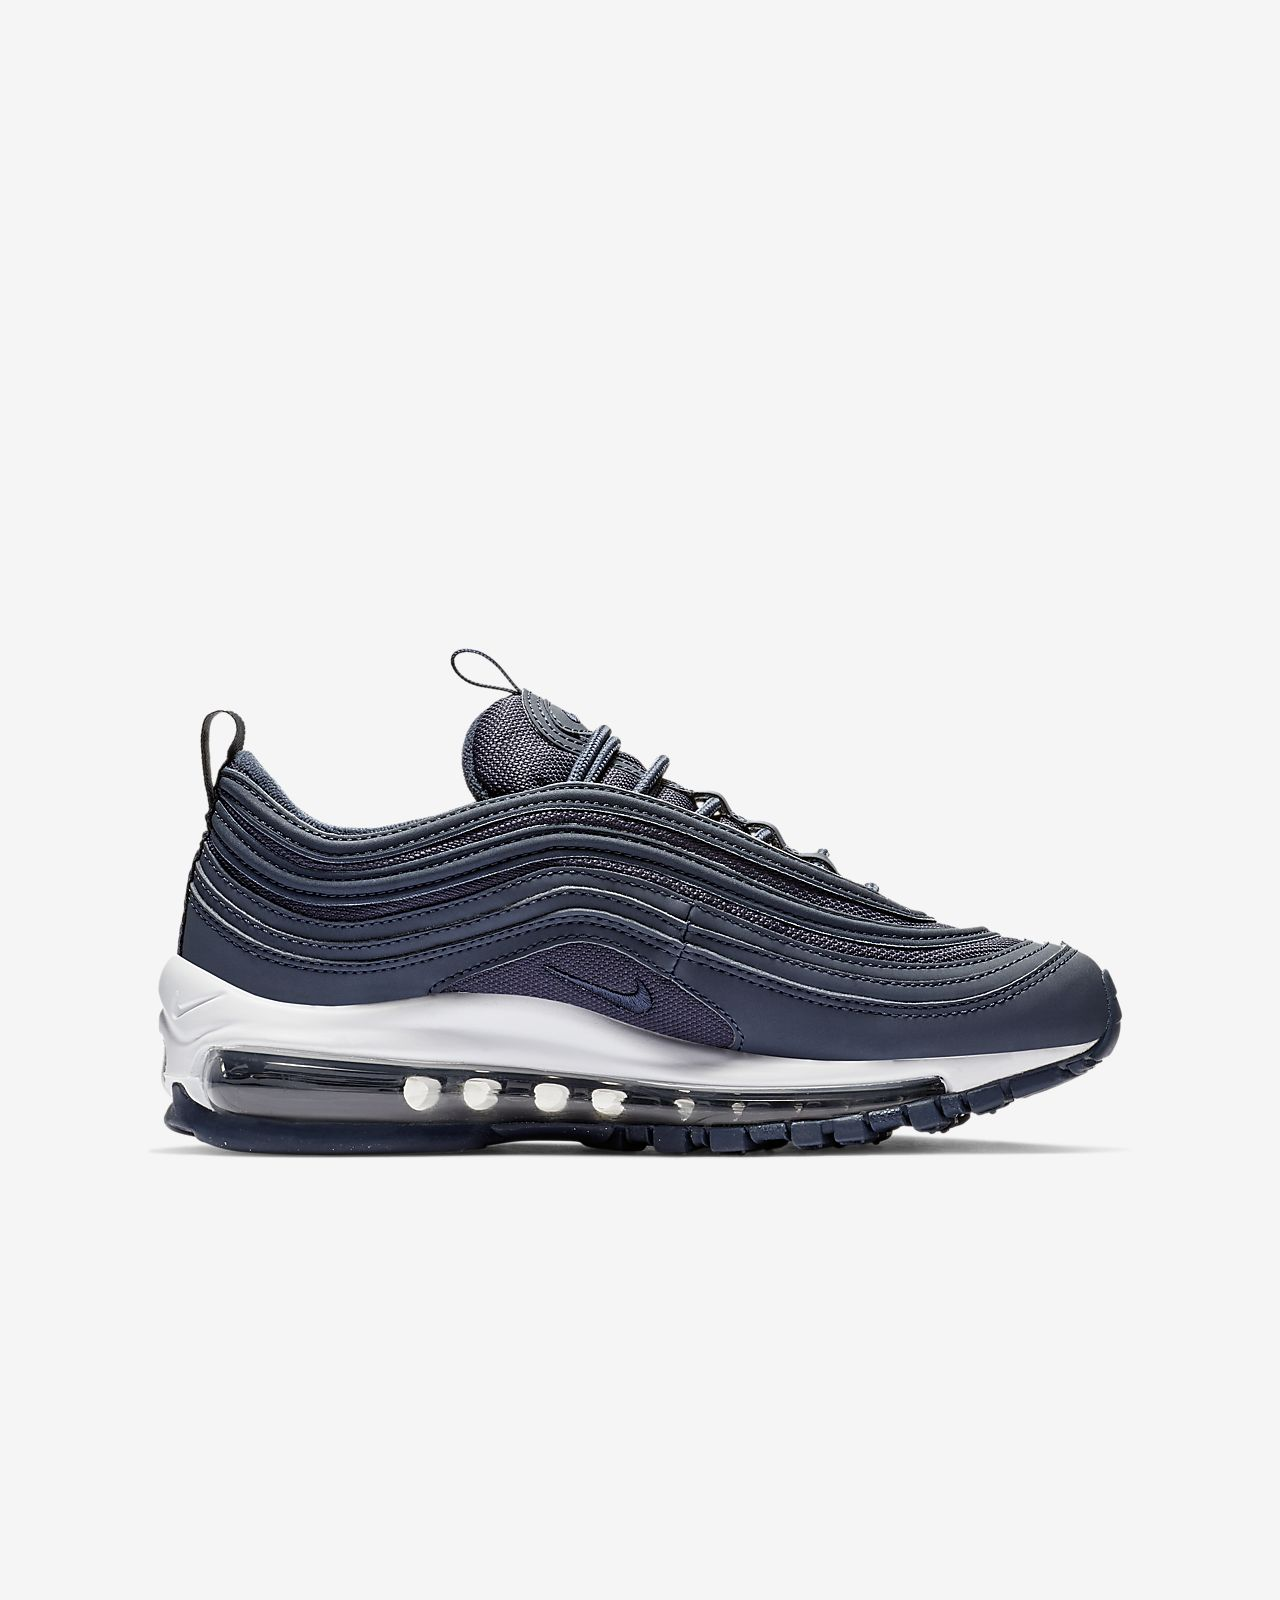 458007396cc4 Nike Air Max 97 PE Older Kids  Shoe. Nike.com GB